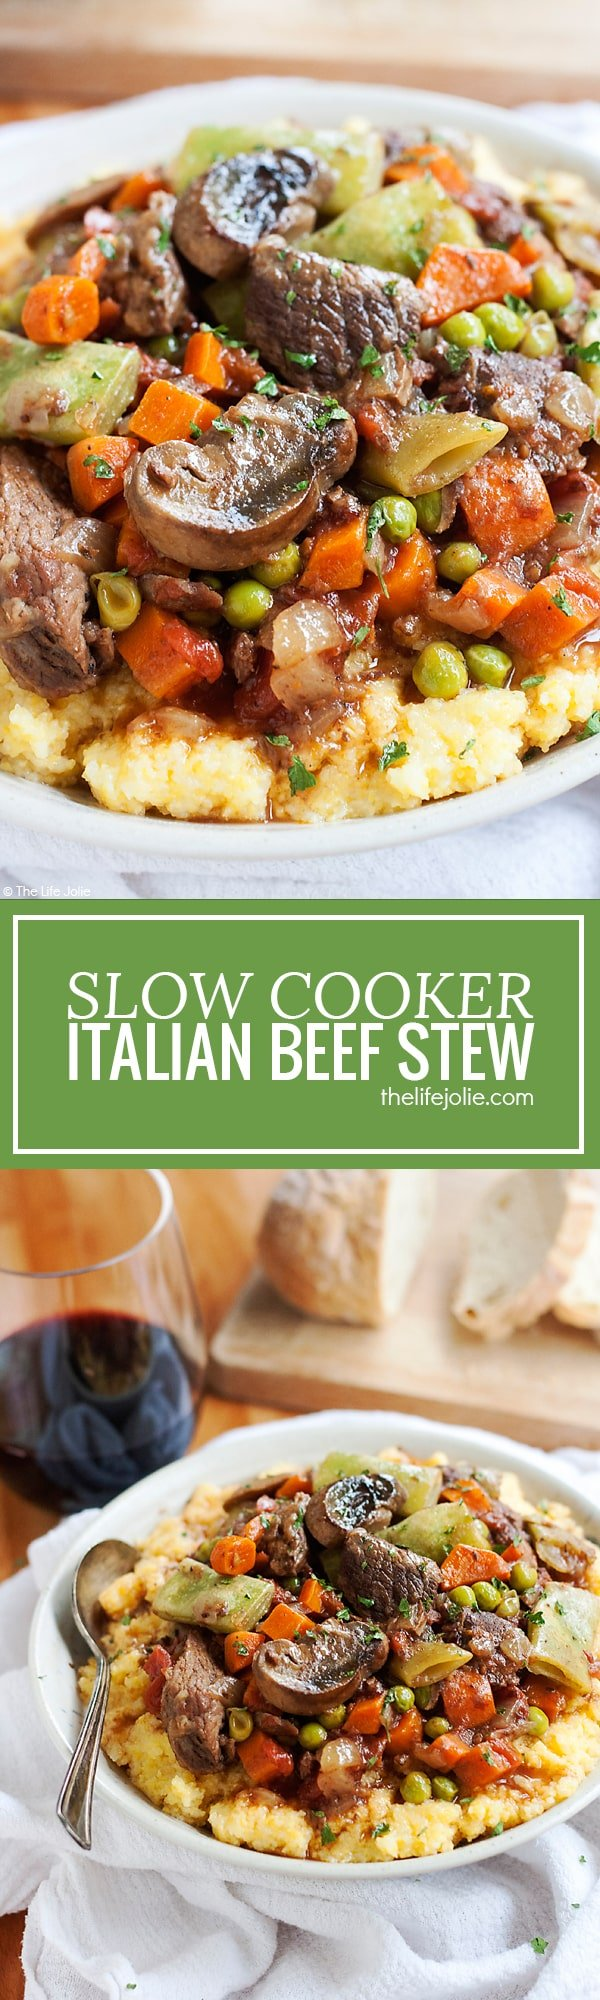 This Slow Cooker Italian Beef Stew recipe is one of my favorite easy comfort food meals. With tender meat, vegetables, tomatoes (and a little bit of wine for good measure!) this tastes fantastic served over potatoes, pasta or polenta with a nice, crusty piece of bread!